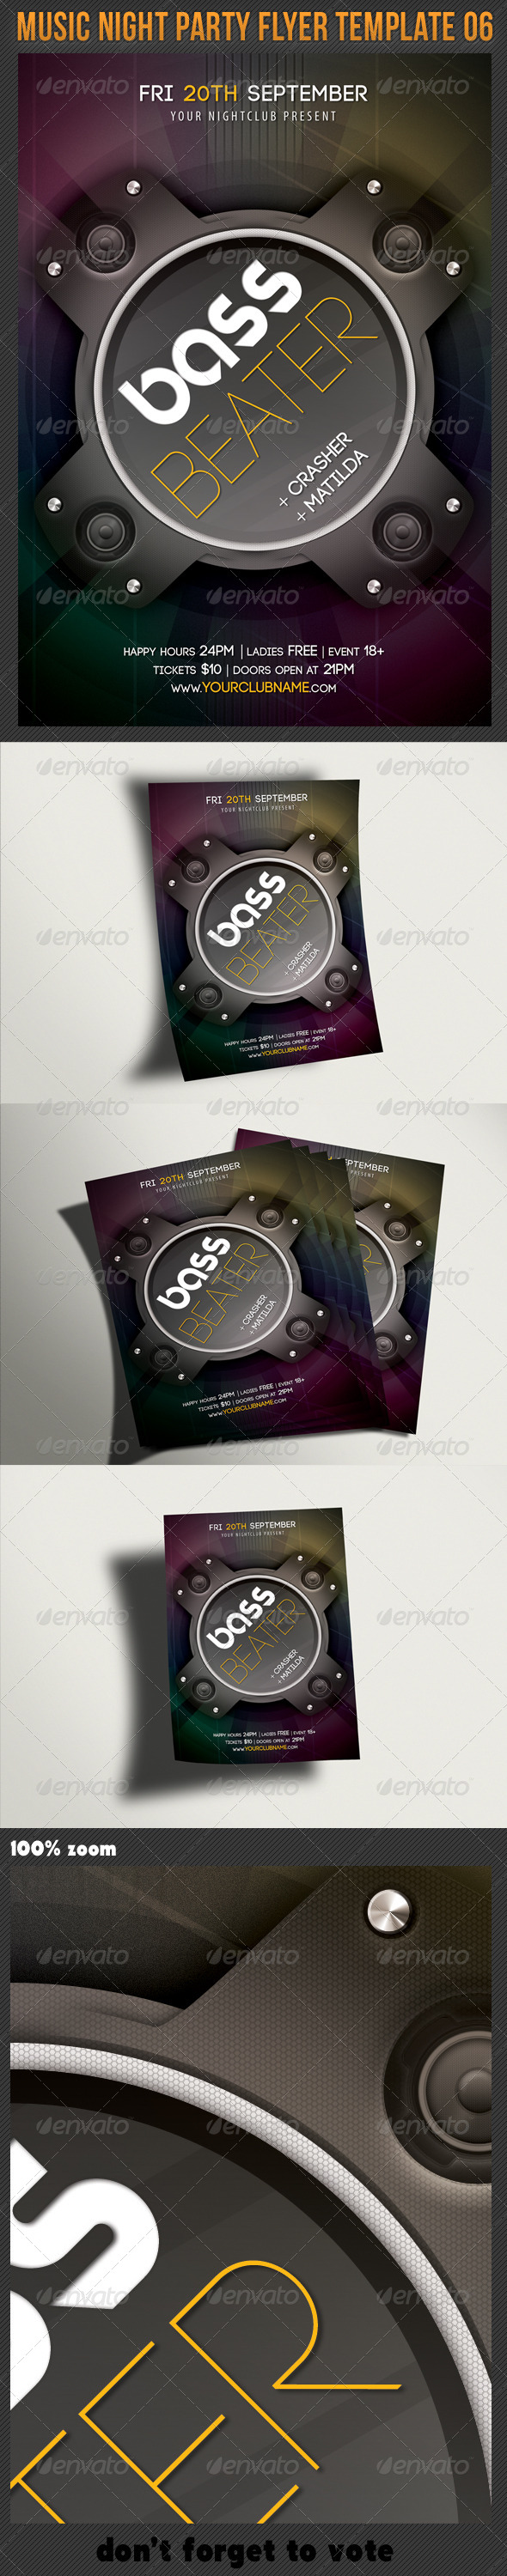 Music Night Party Flyer Template 06 - Clubs & Parties Events